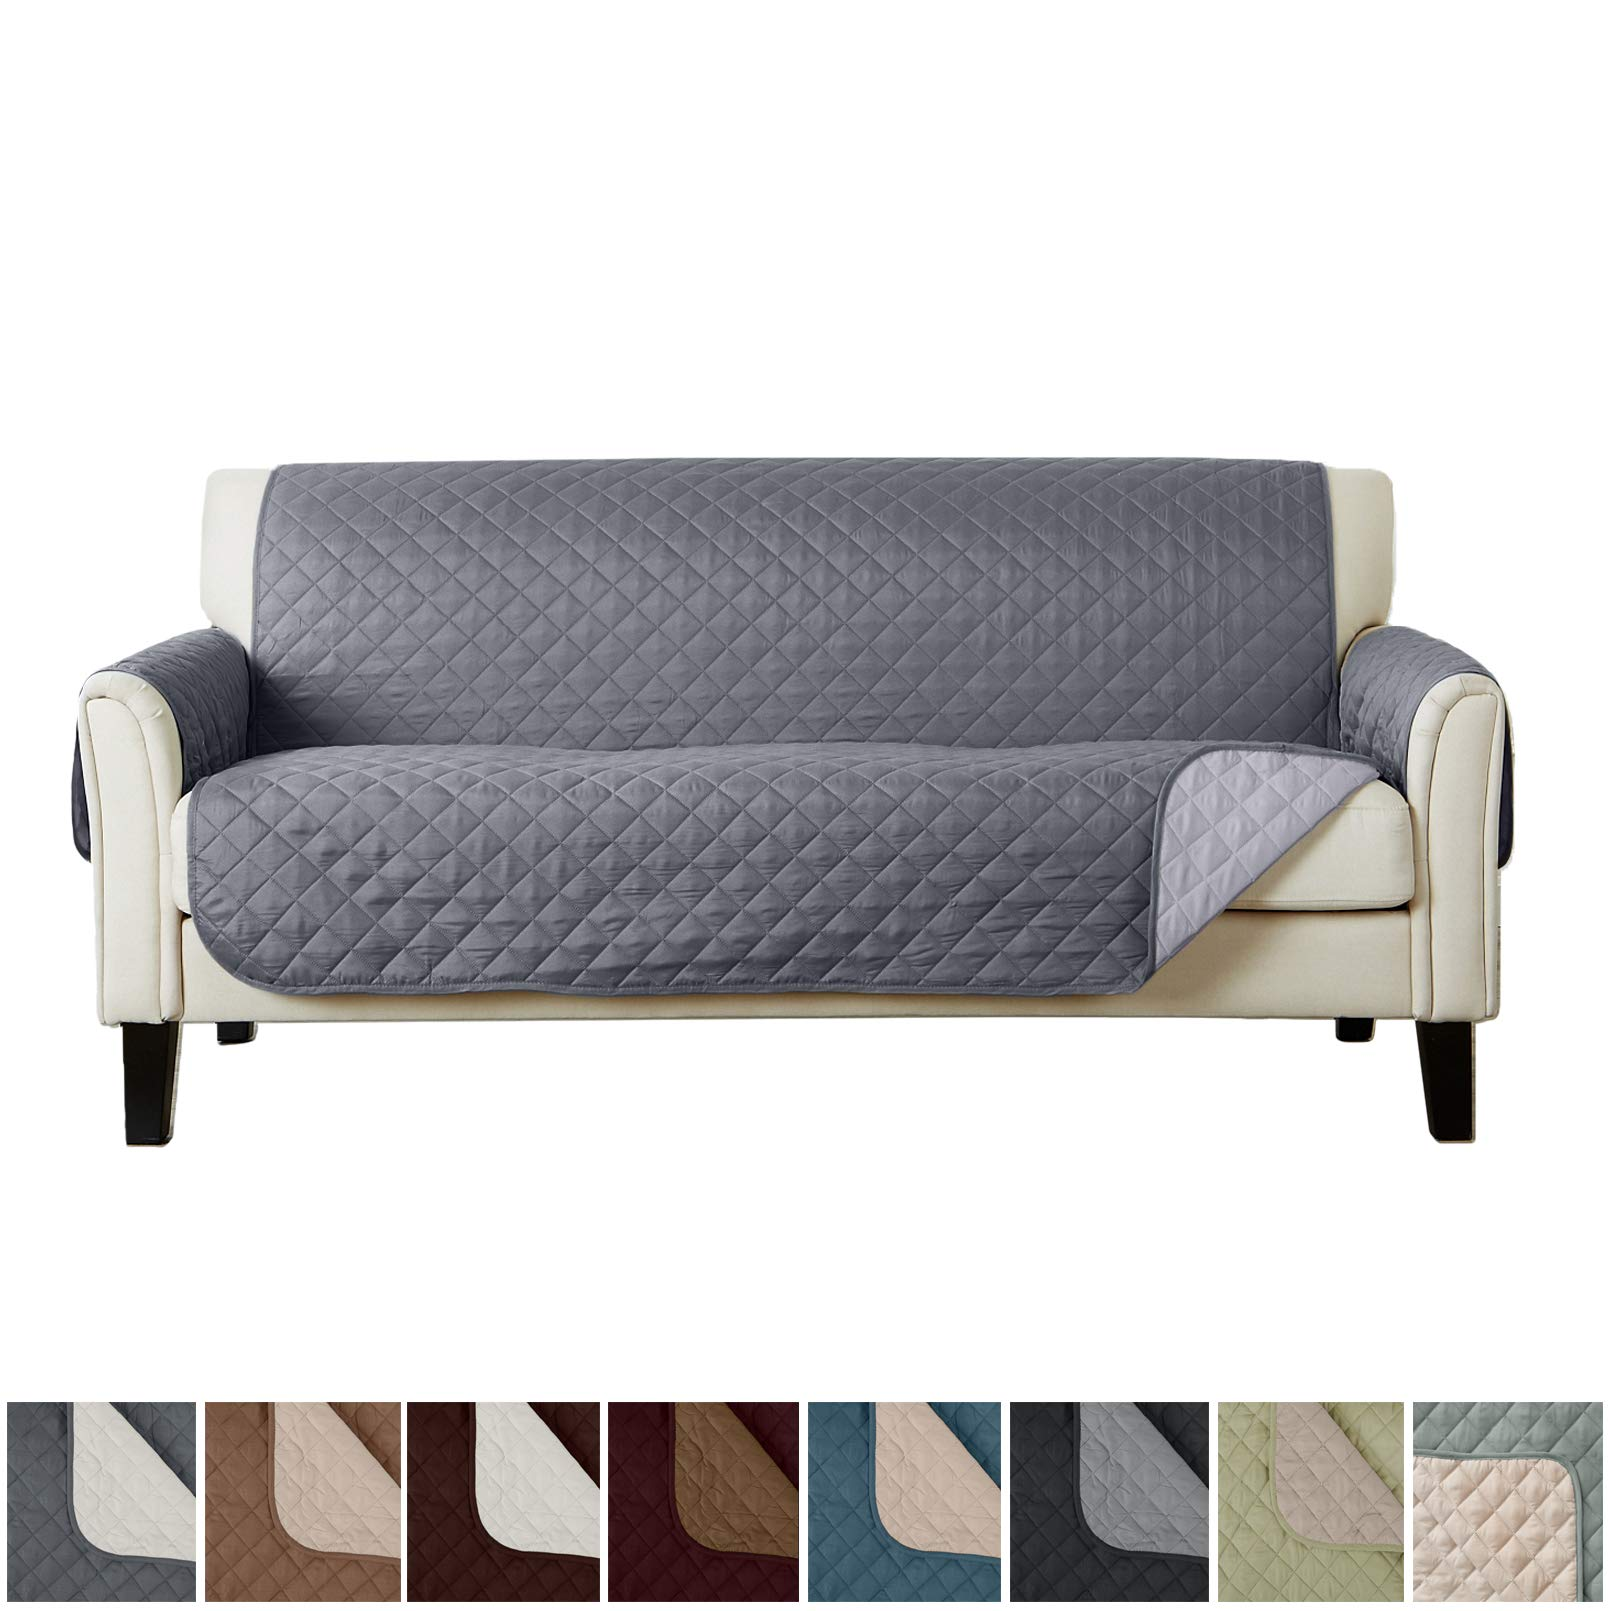 Home Fashion Designs Deluxe Reversible Quilted Furniture Protector. Perfect for Families with Pets and Kids. (Sofa/Couch, Light Grey/Dark Grey)